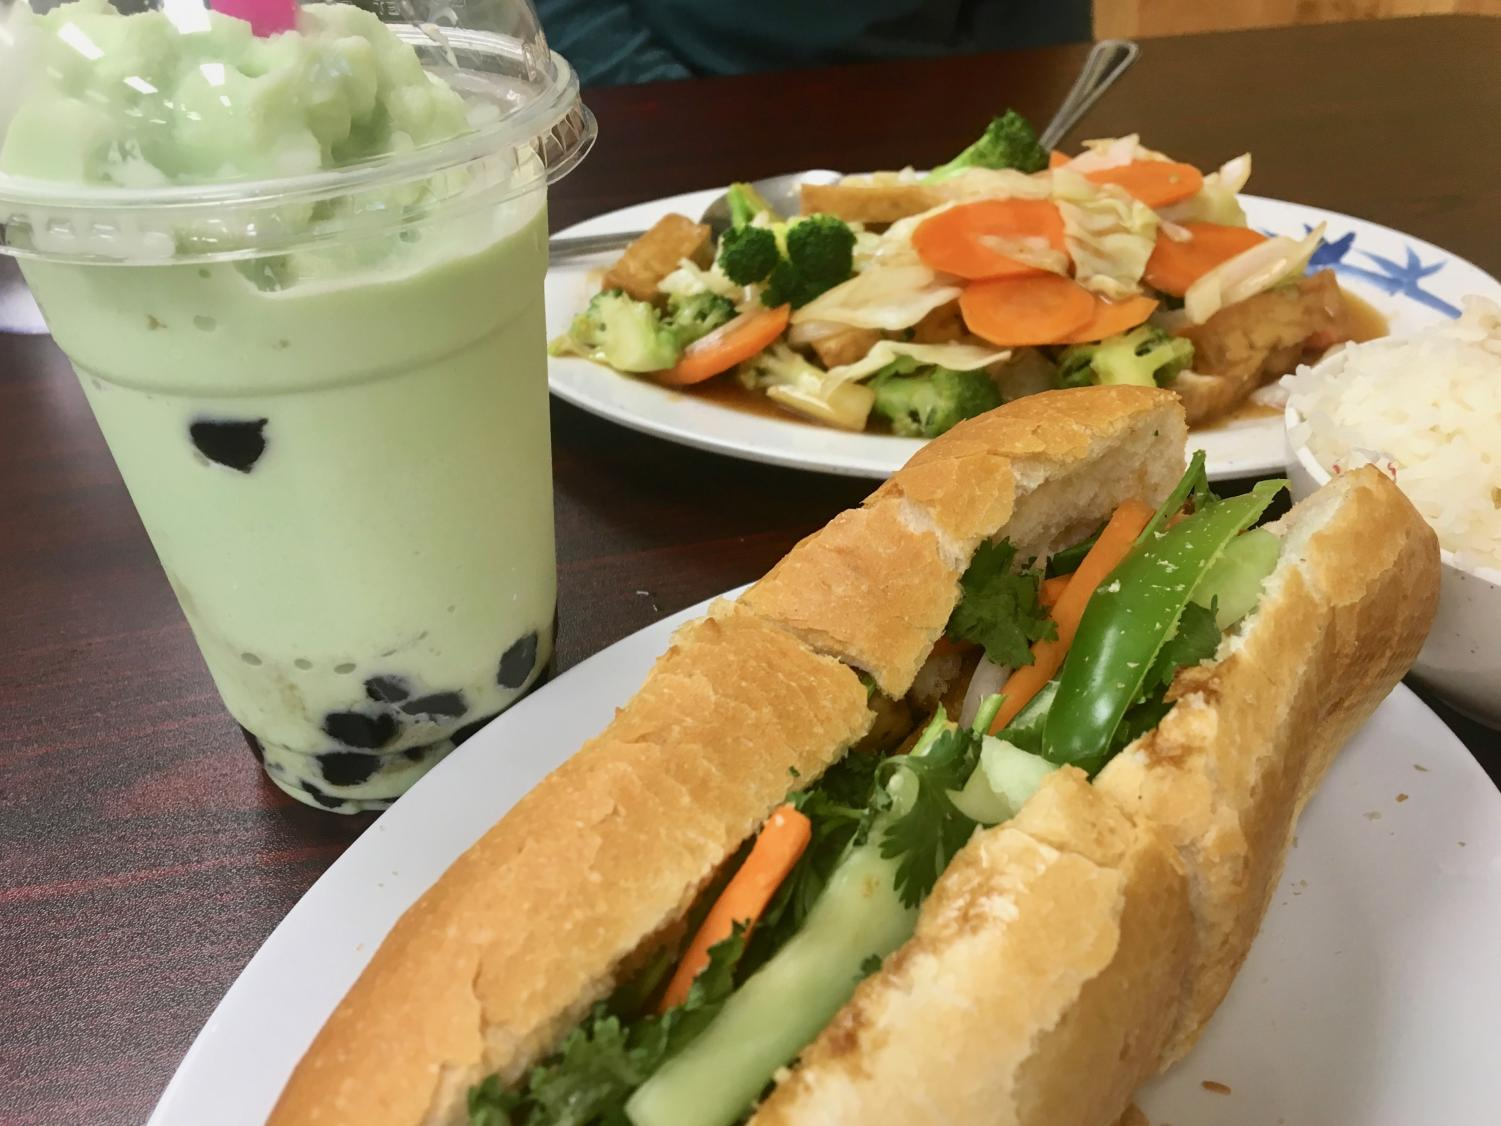 Snelling's newest eatery, Pho Pasteur, is home to a variety of Vietnamese cuisine for prices students can afford.